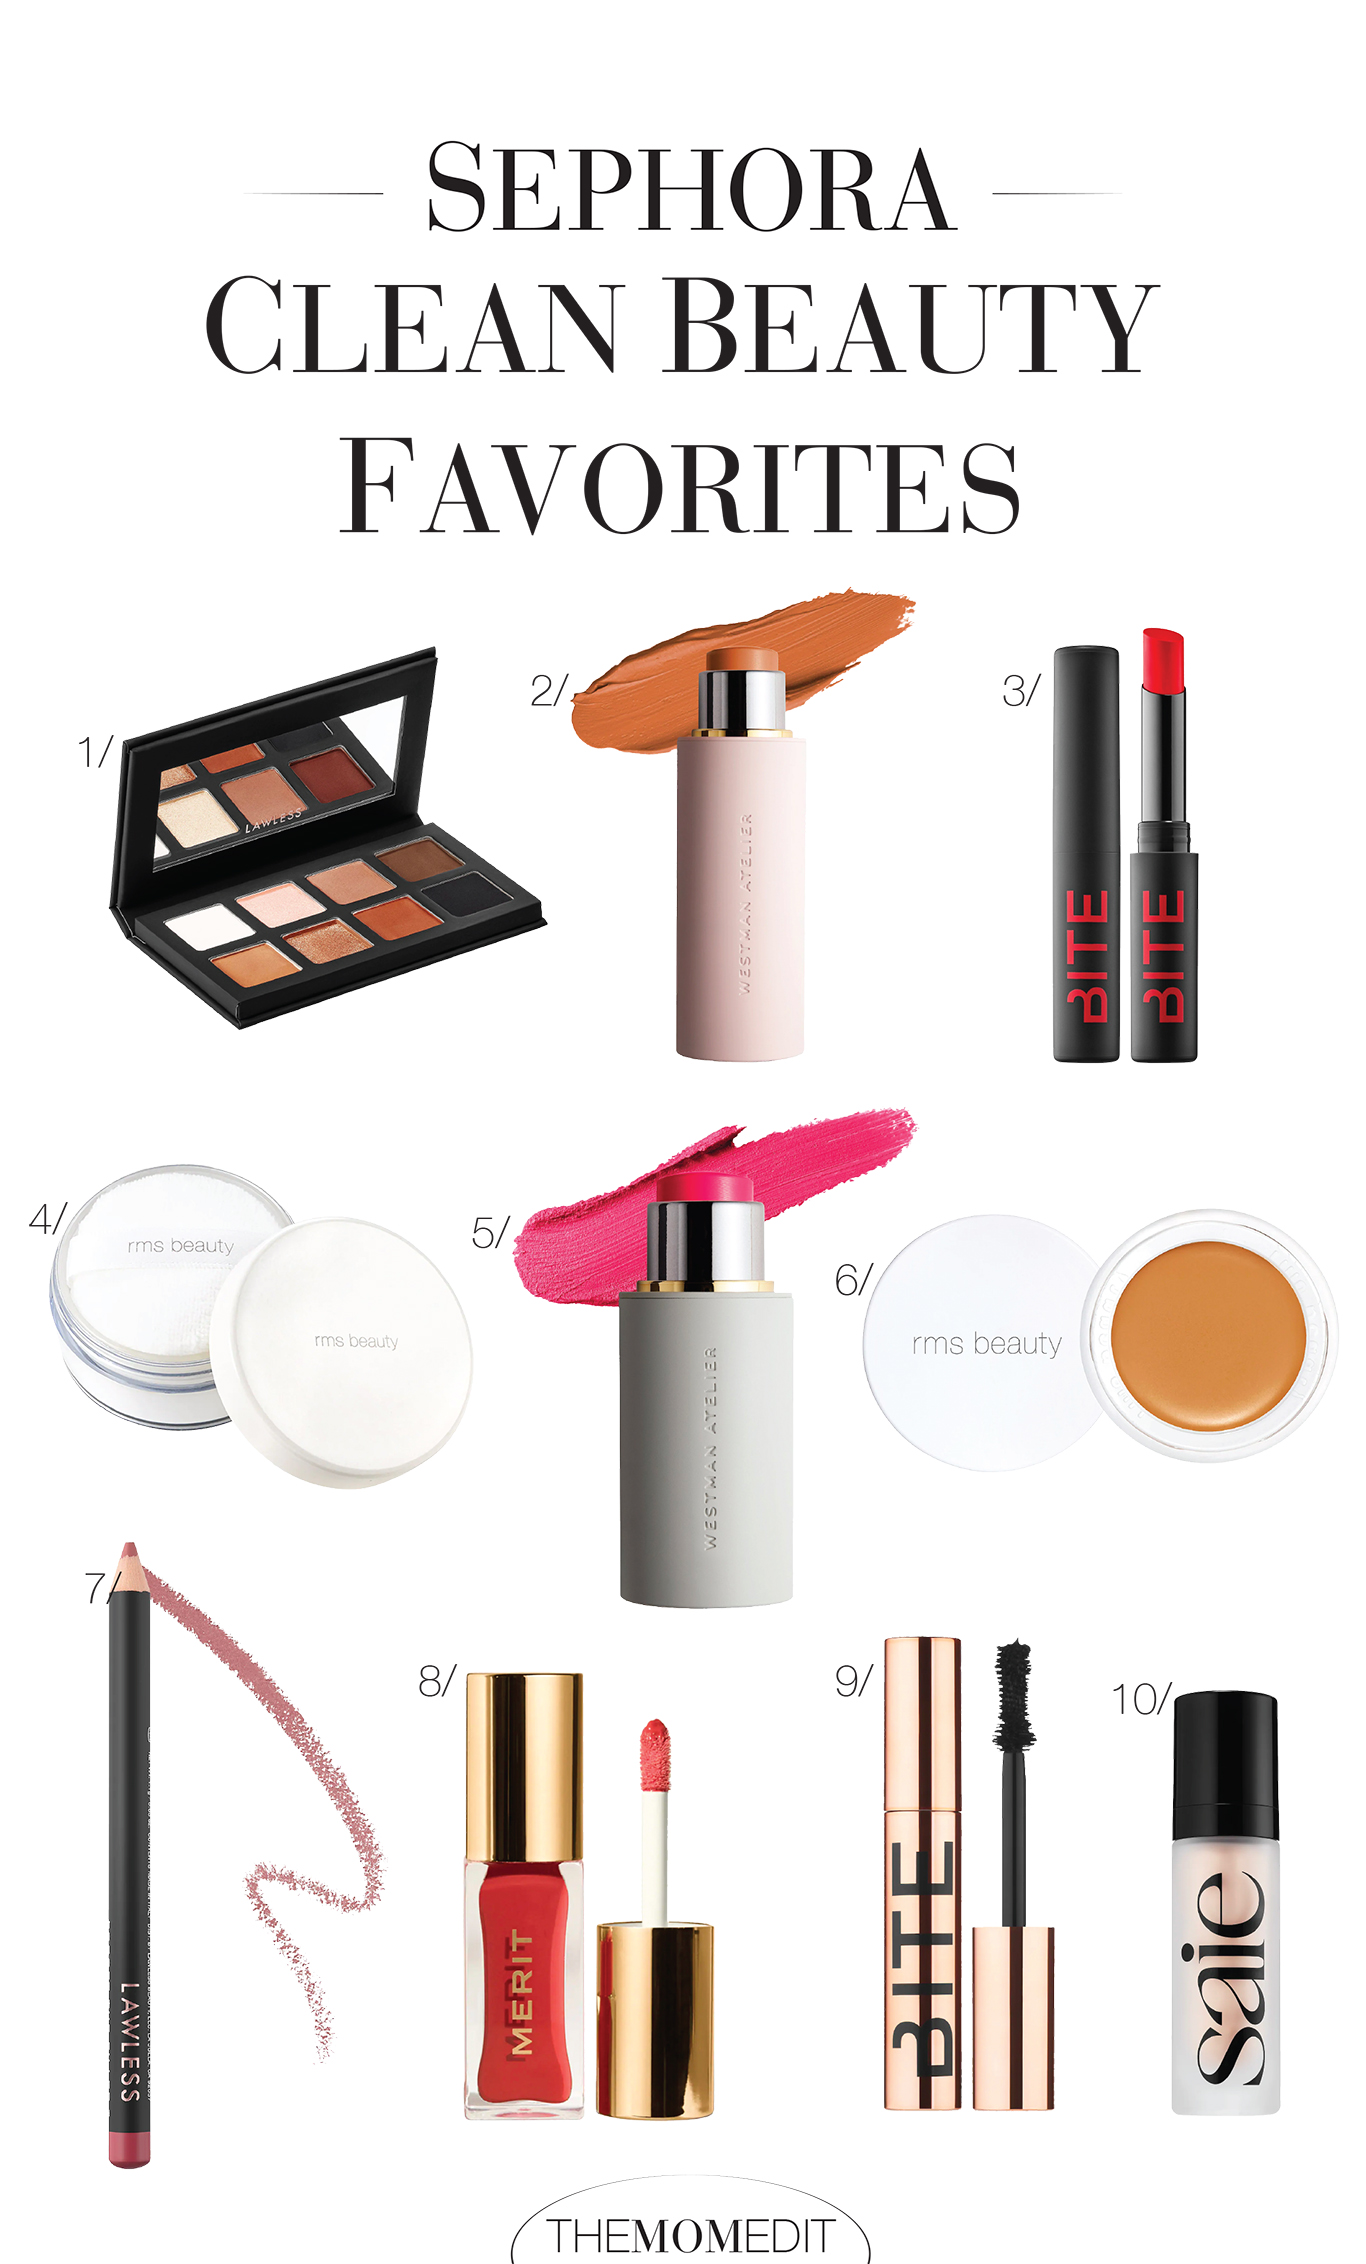 Sephora has been dangerously good w/ their clean beauty offerings. We're not mad about a cart full of clean makeup — here's our top 10 list.